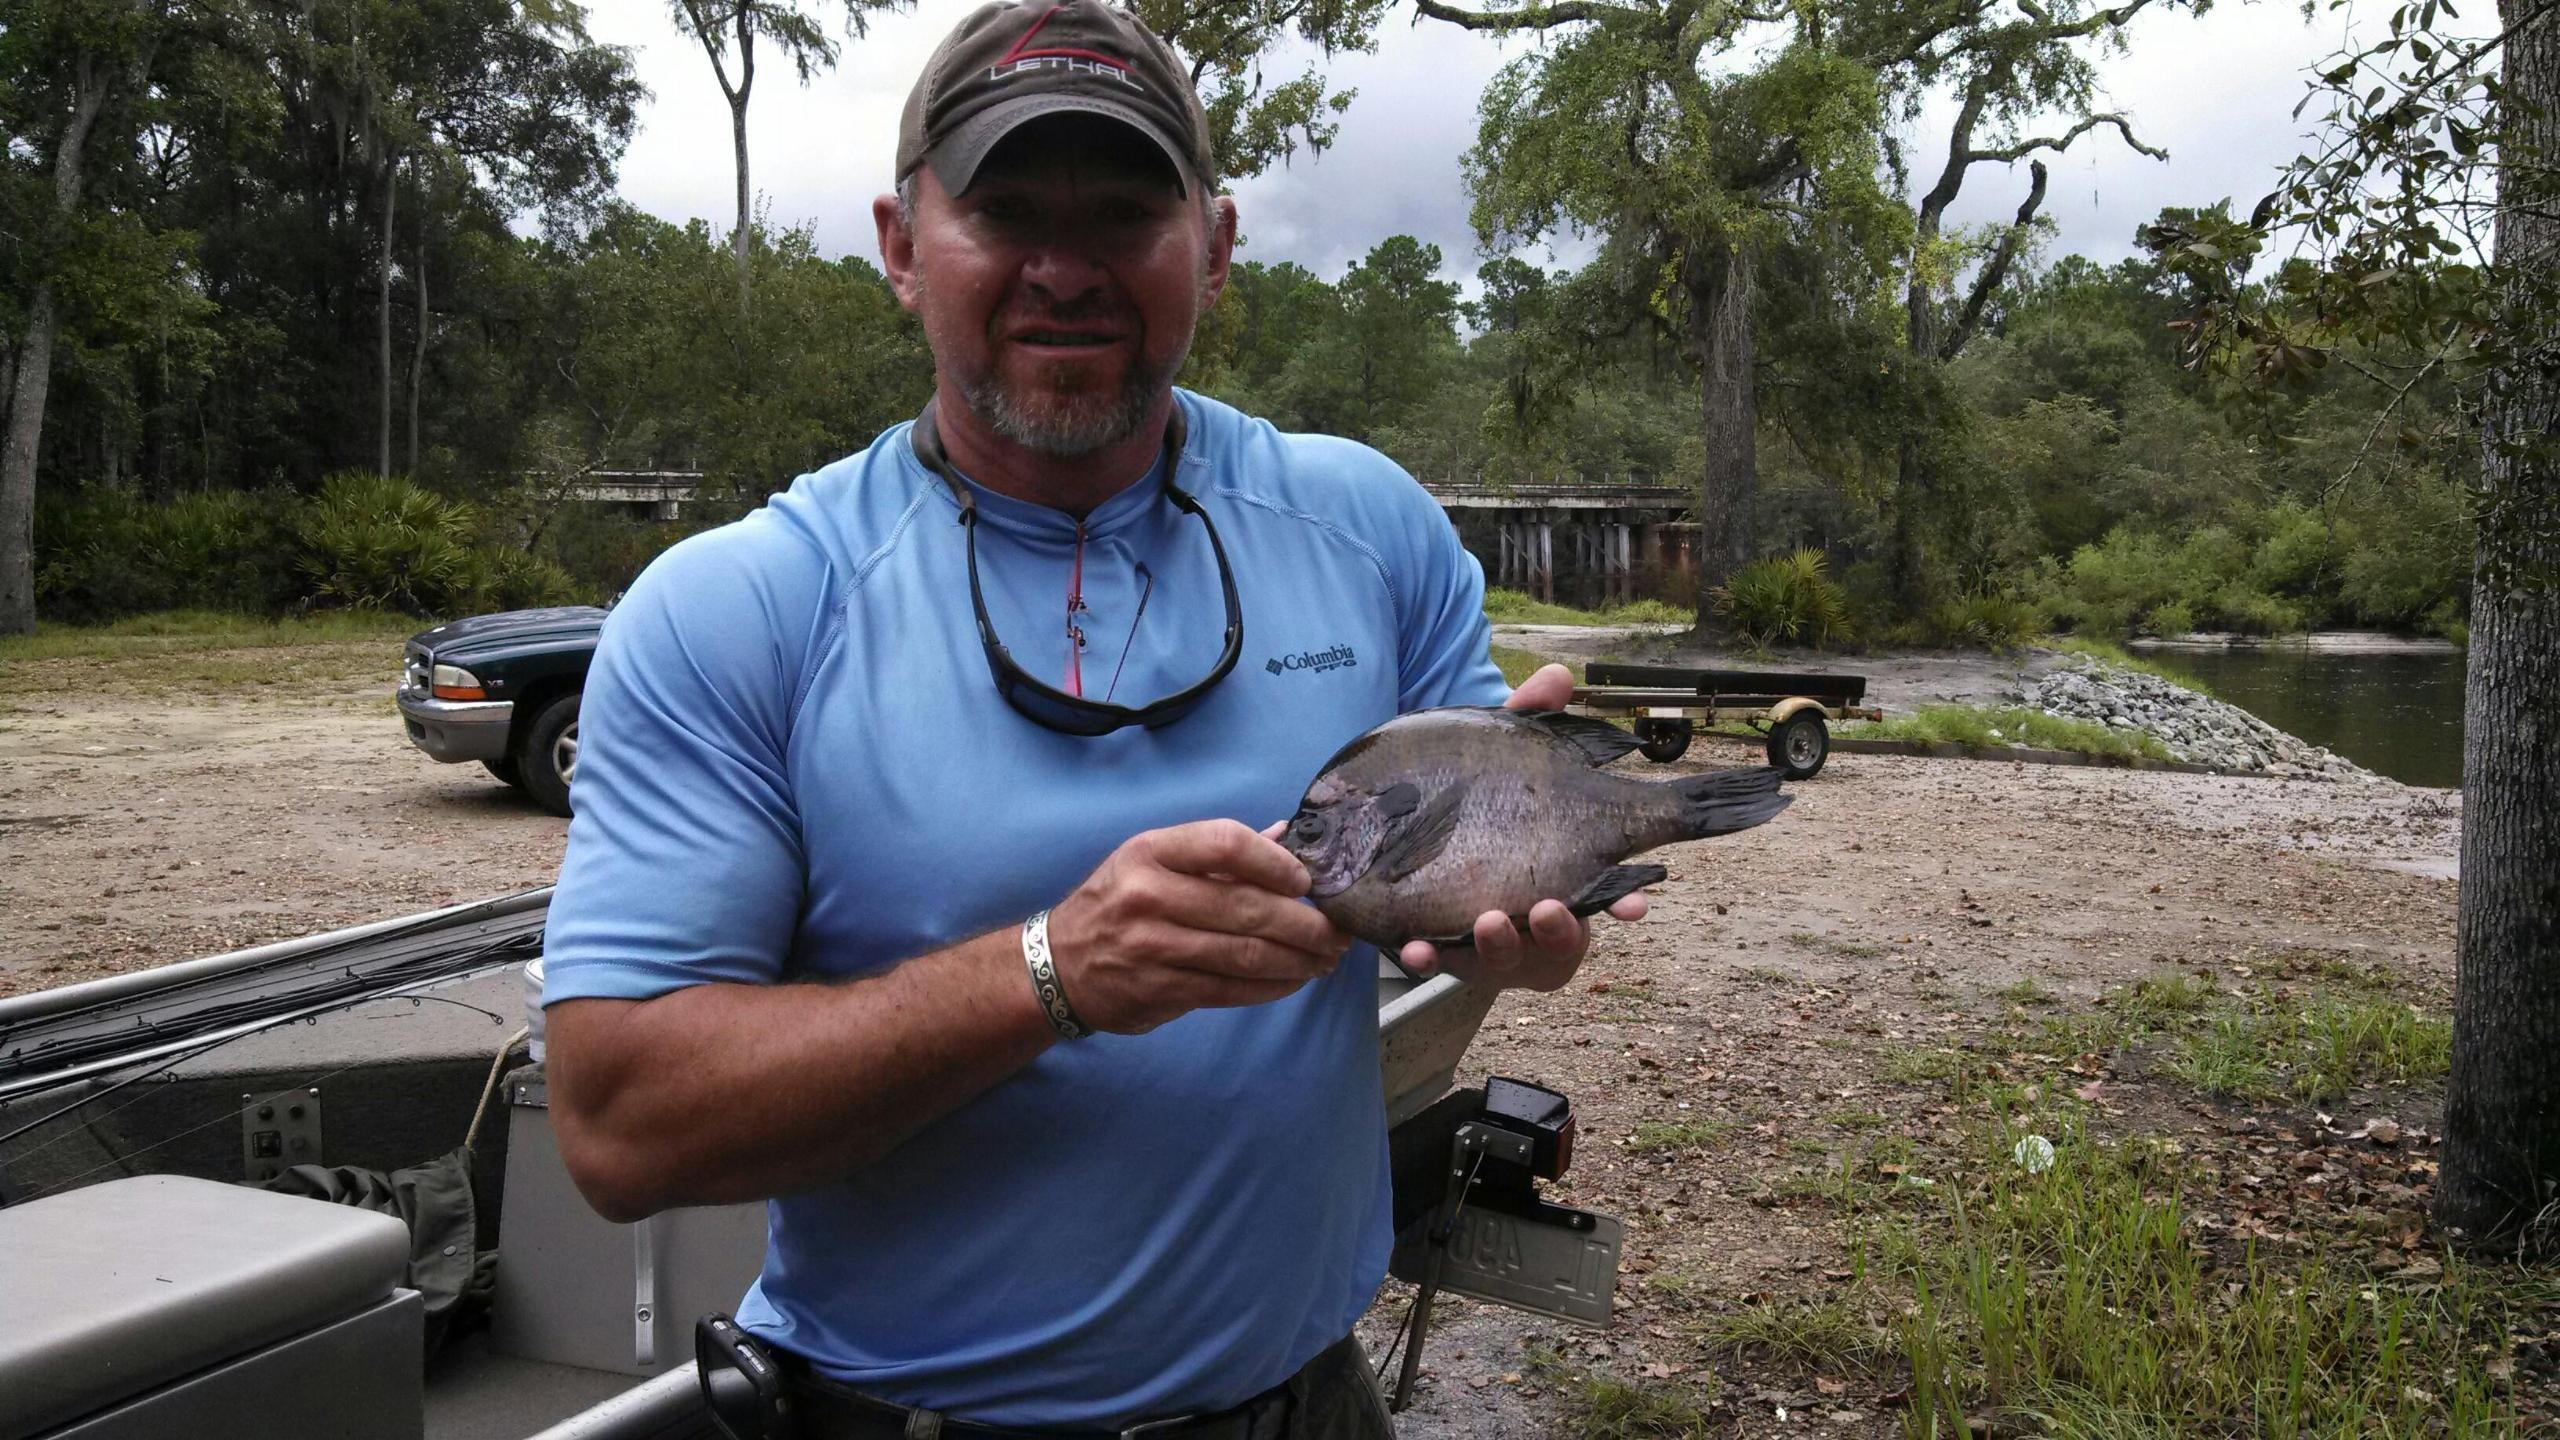 Freshwater fish in georgia - Jamie Hodge And A Friend Caught 42 Fish In The Satilla River Including This Giant